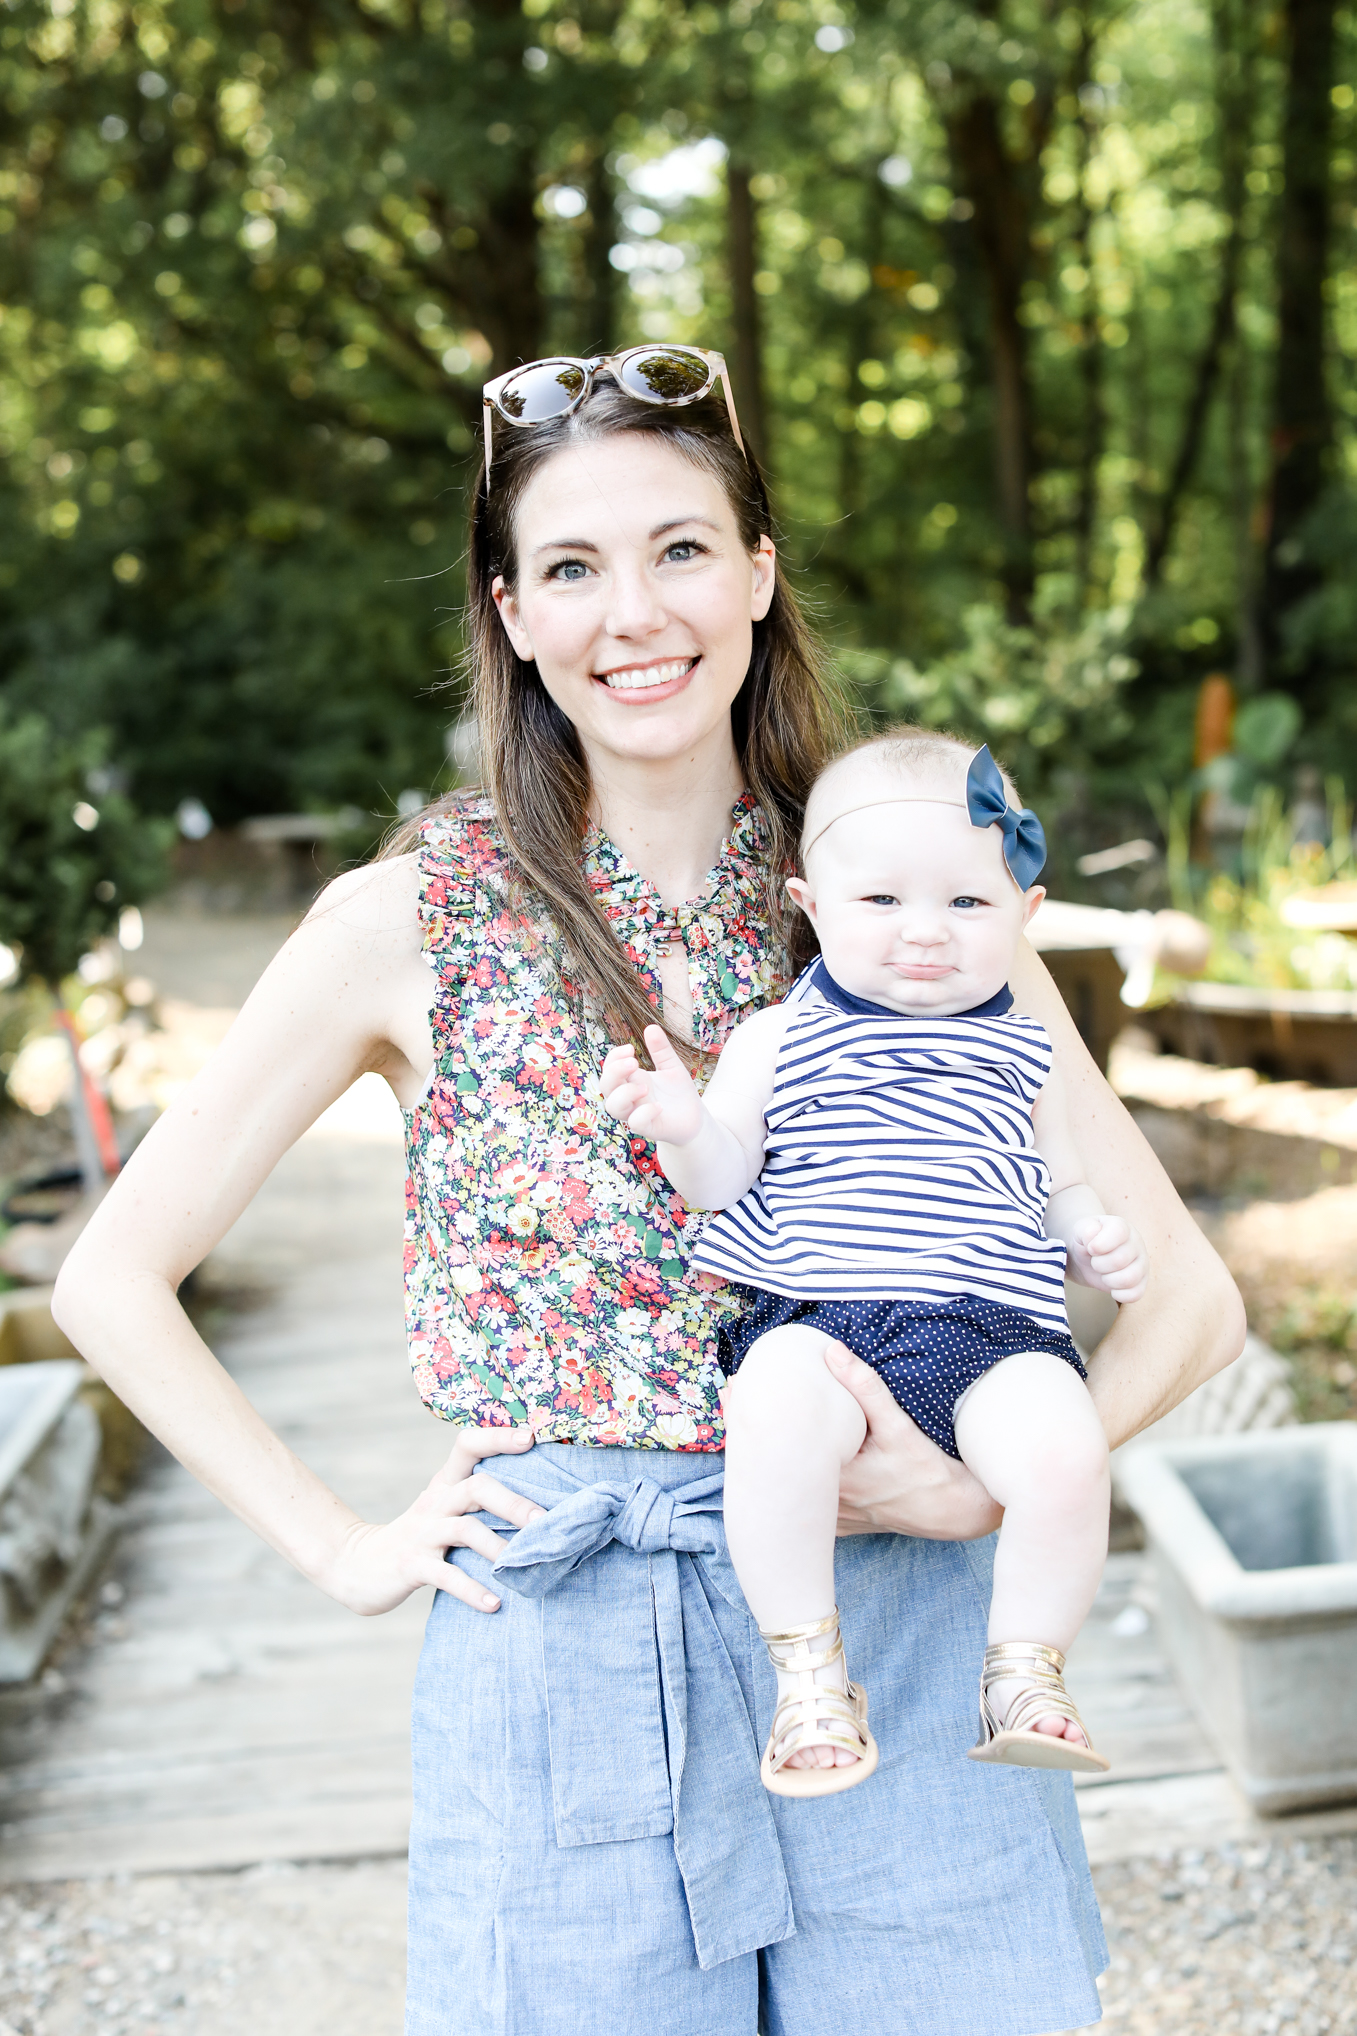 navy with floral print | Lifestyle blogger Elle Bowes shares her favorite jcrew new arrivals